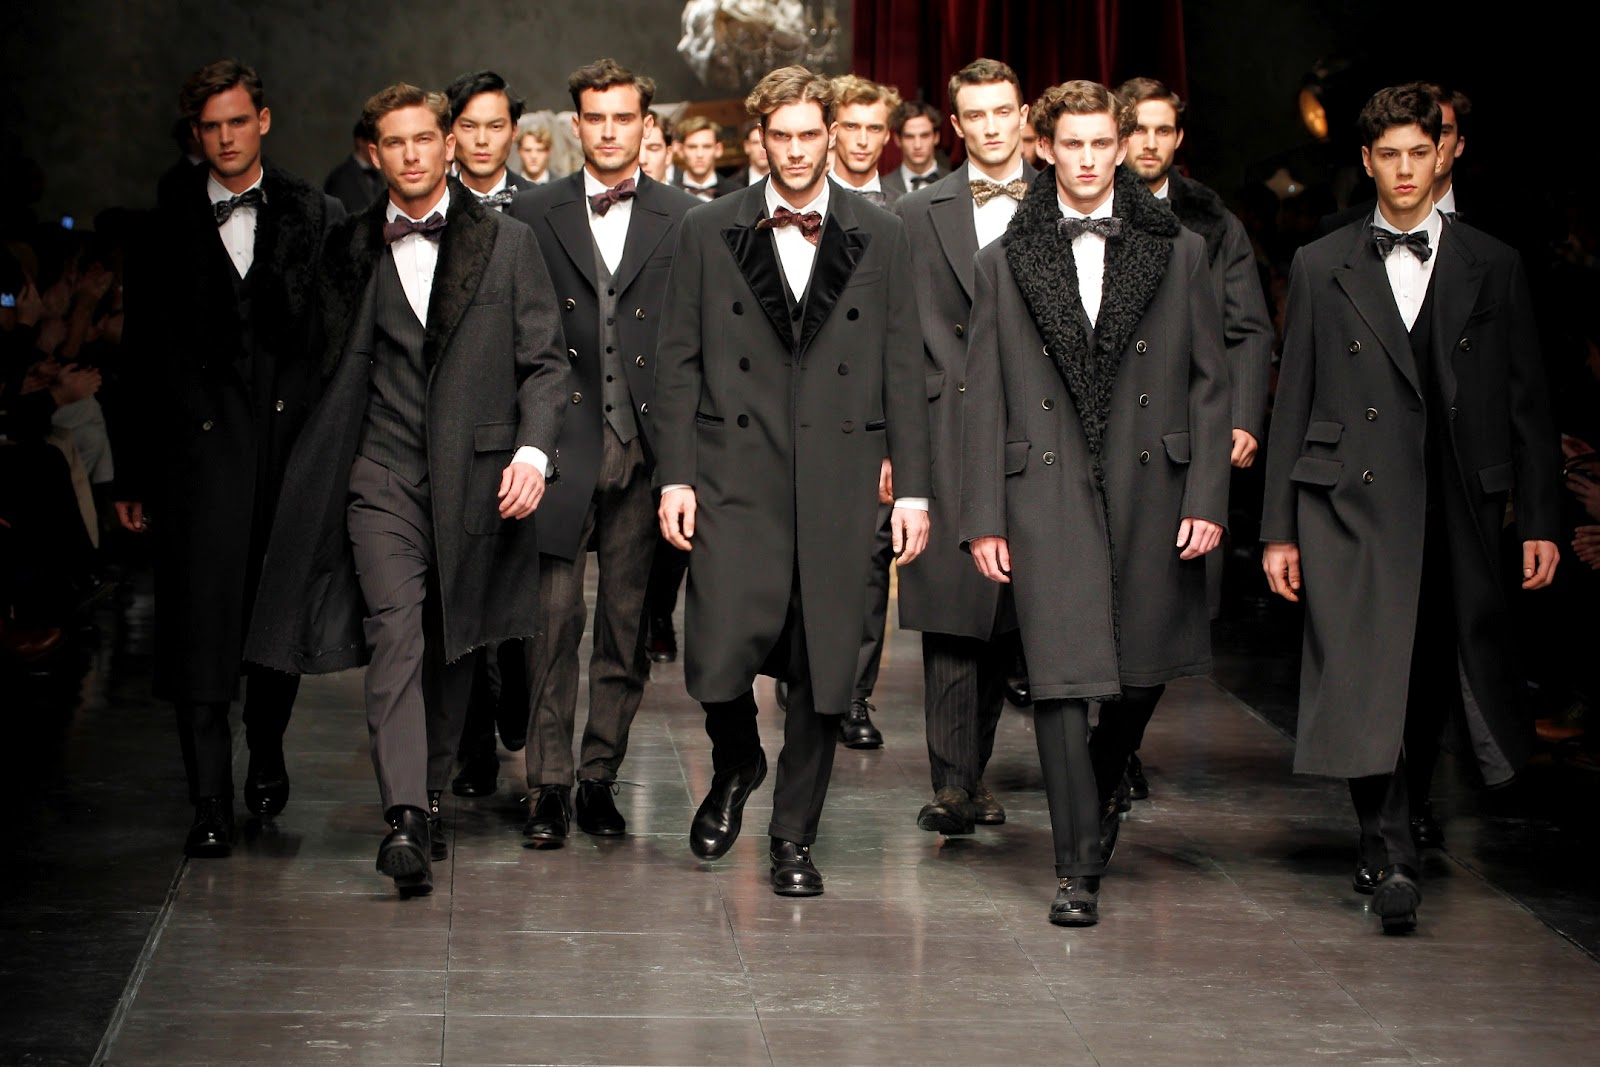 http://en.ozonweb.com/wp-content/uploads/2015/01/Milan-Fashion-Week-for-Men.jpg